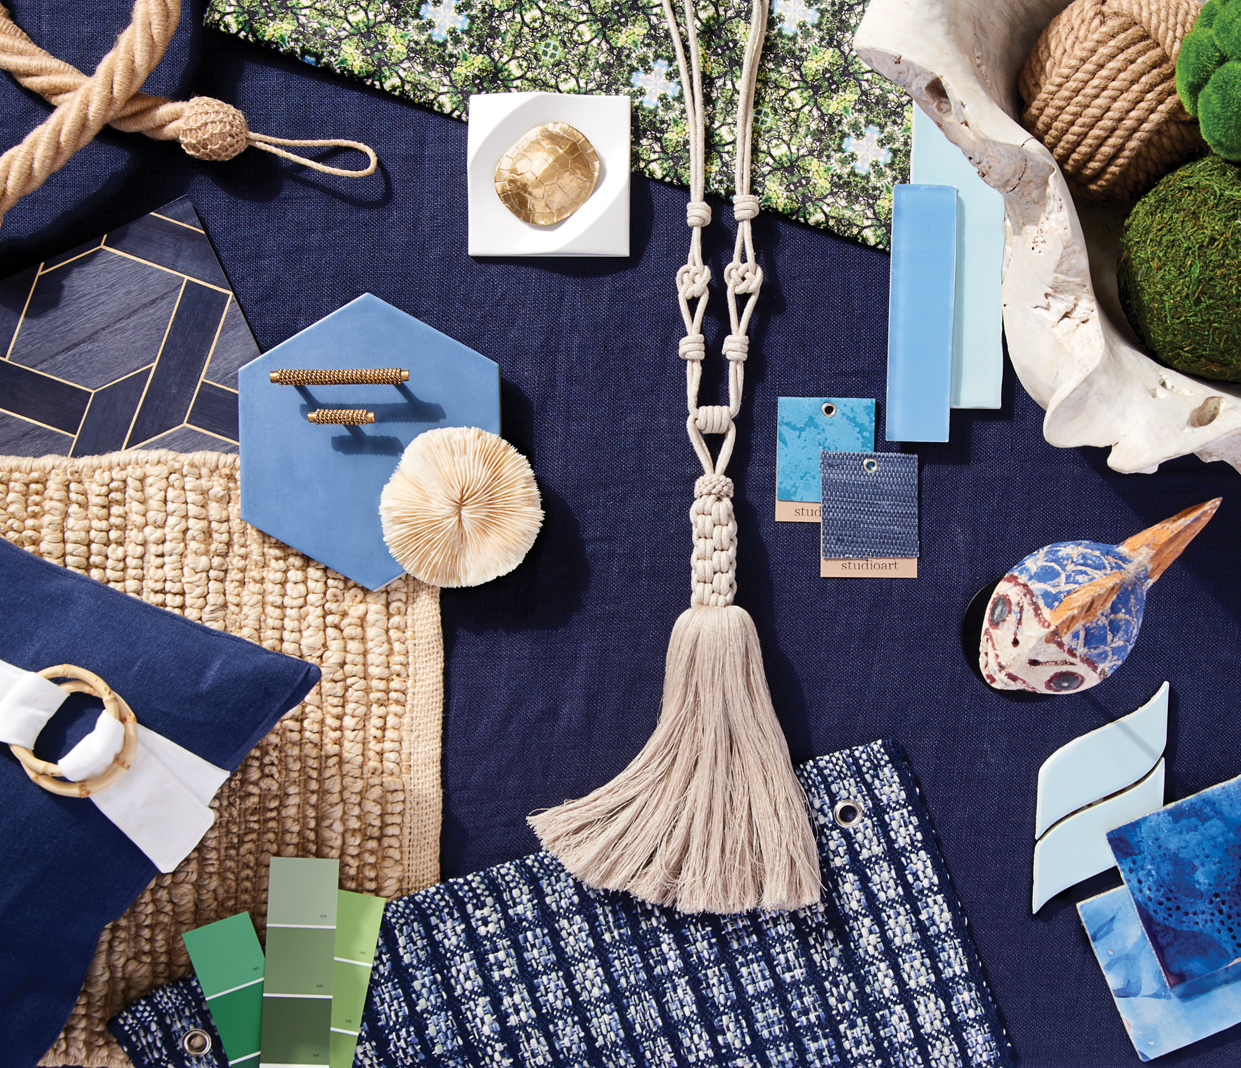 Rope textures, swirling blues, and sea glass are just some of the nautical decor touches you can add to your lake home this year.